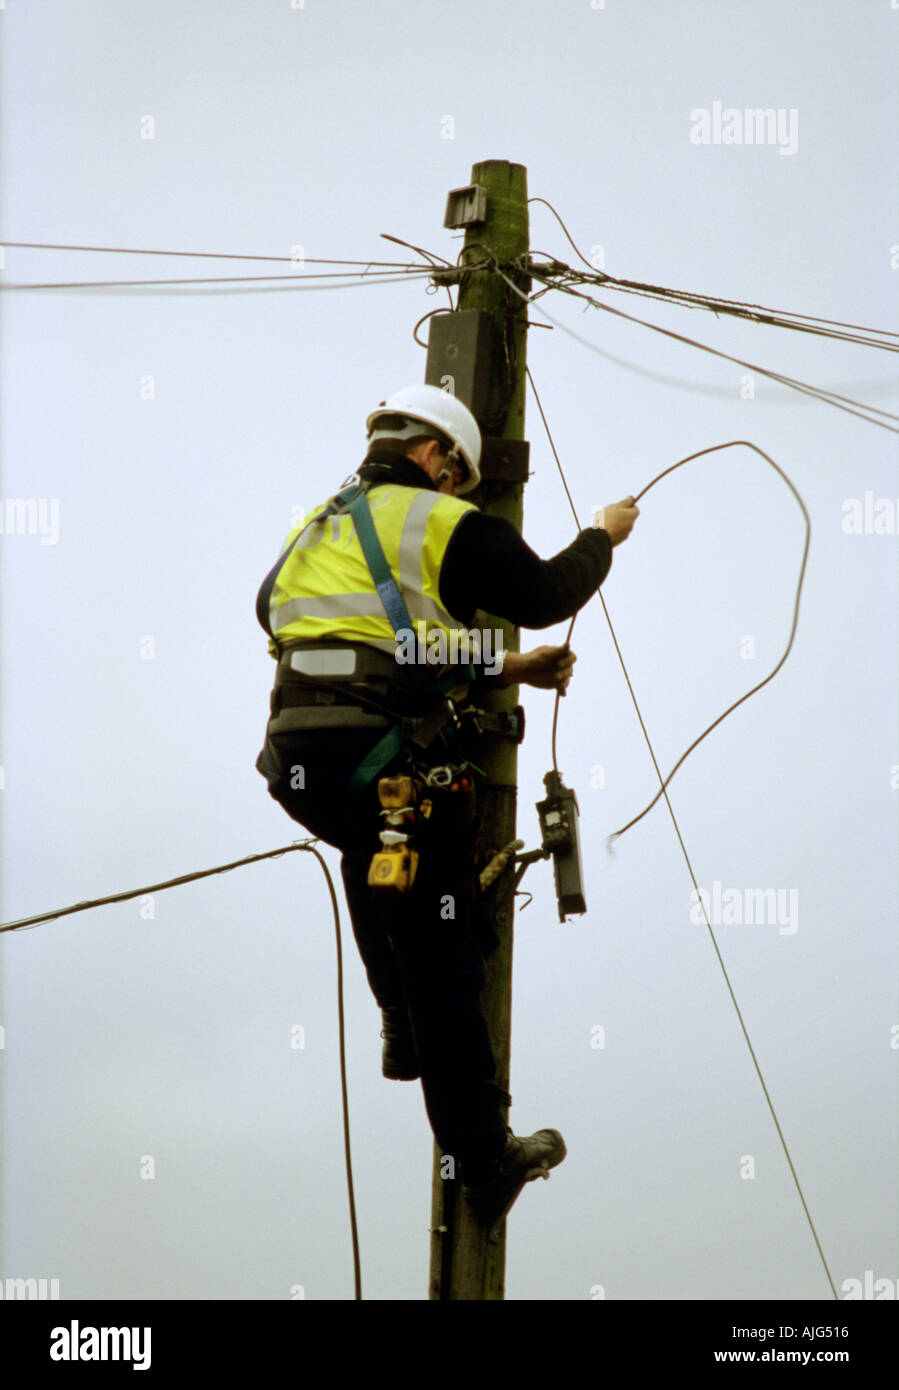 f55a8a4a586b British telecom telephone cable engineer working up a pylon to repair a  faulty line